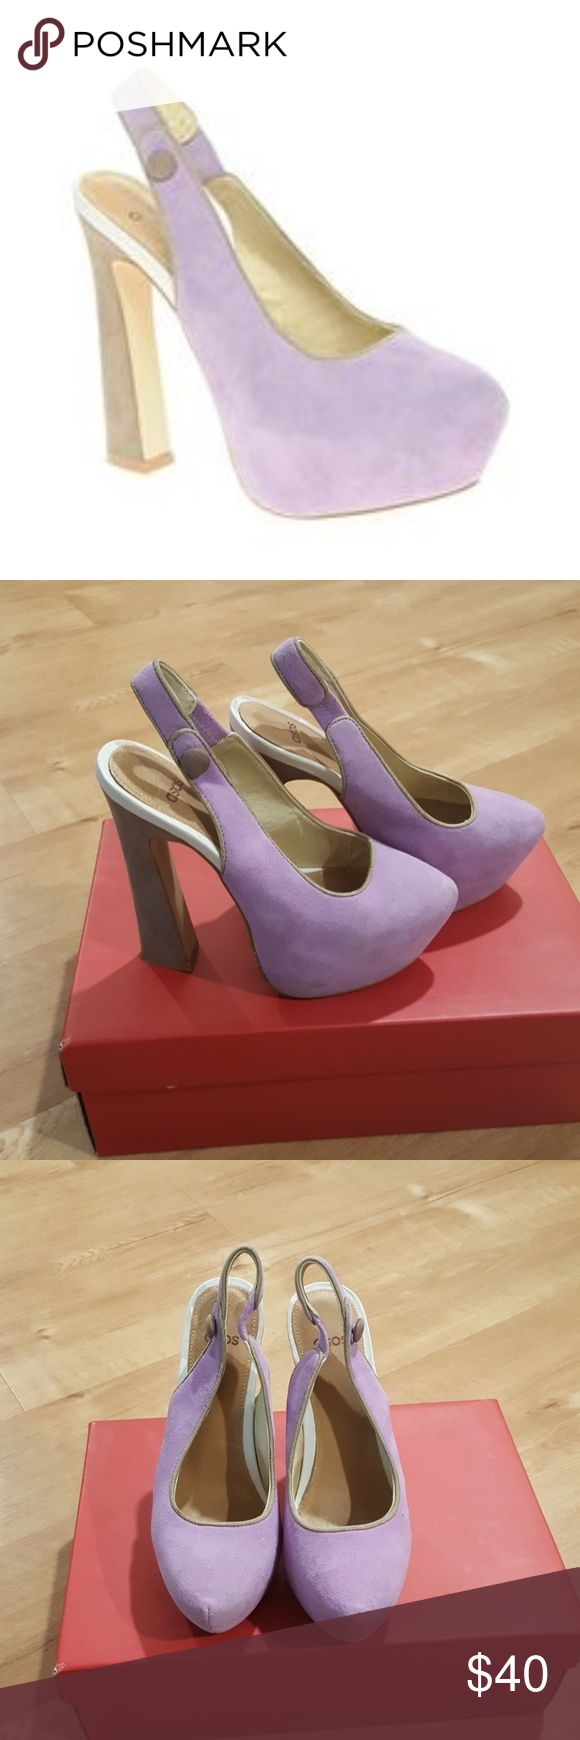 Asos PISA suede platform heels Suede platform heels in lavender.   Size is UK3=US5  Shoes are in excellent condition with minimal signs of wear--be sure to see pix :) Asos Shoes